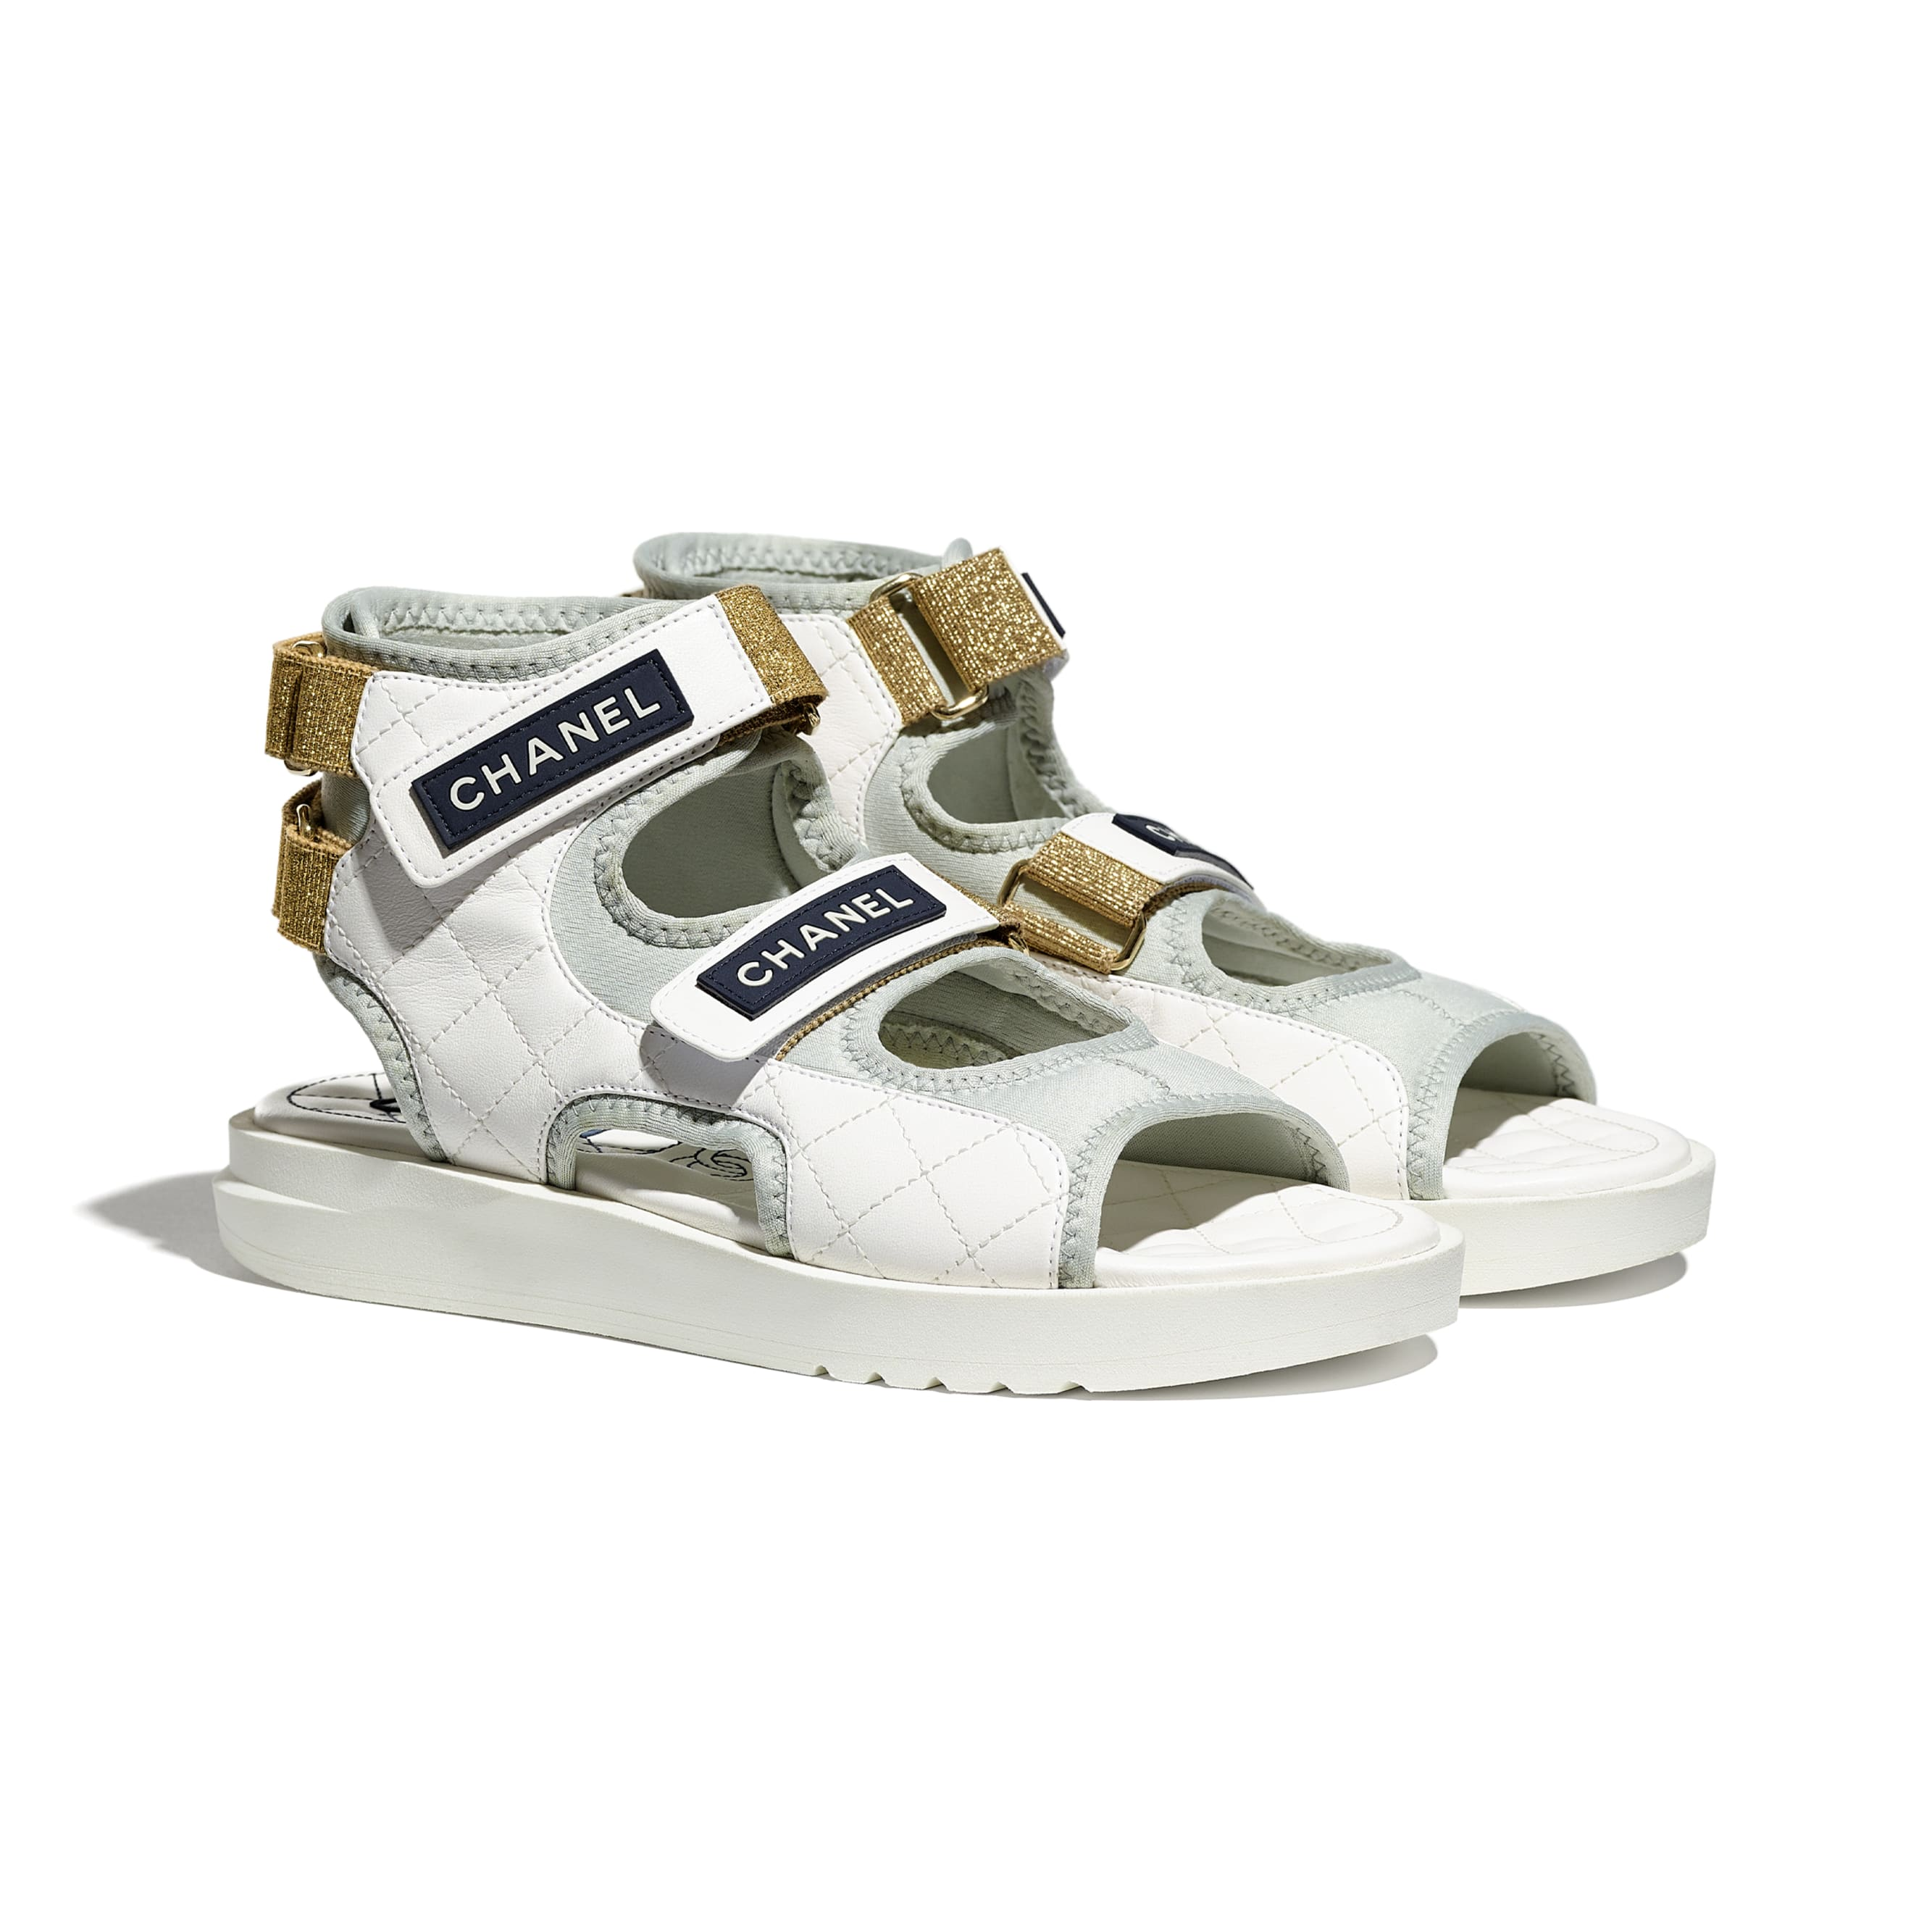 Sandals - White, Light Grey & Navy Blue - Goatskin, Fabric & TPU - CHANEL - Alternative view - see standard sized version